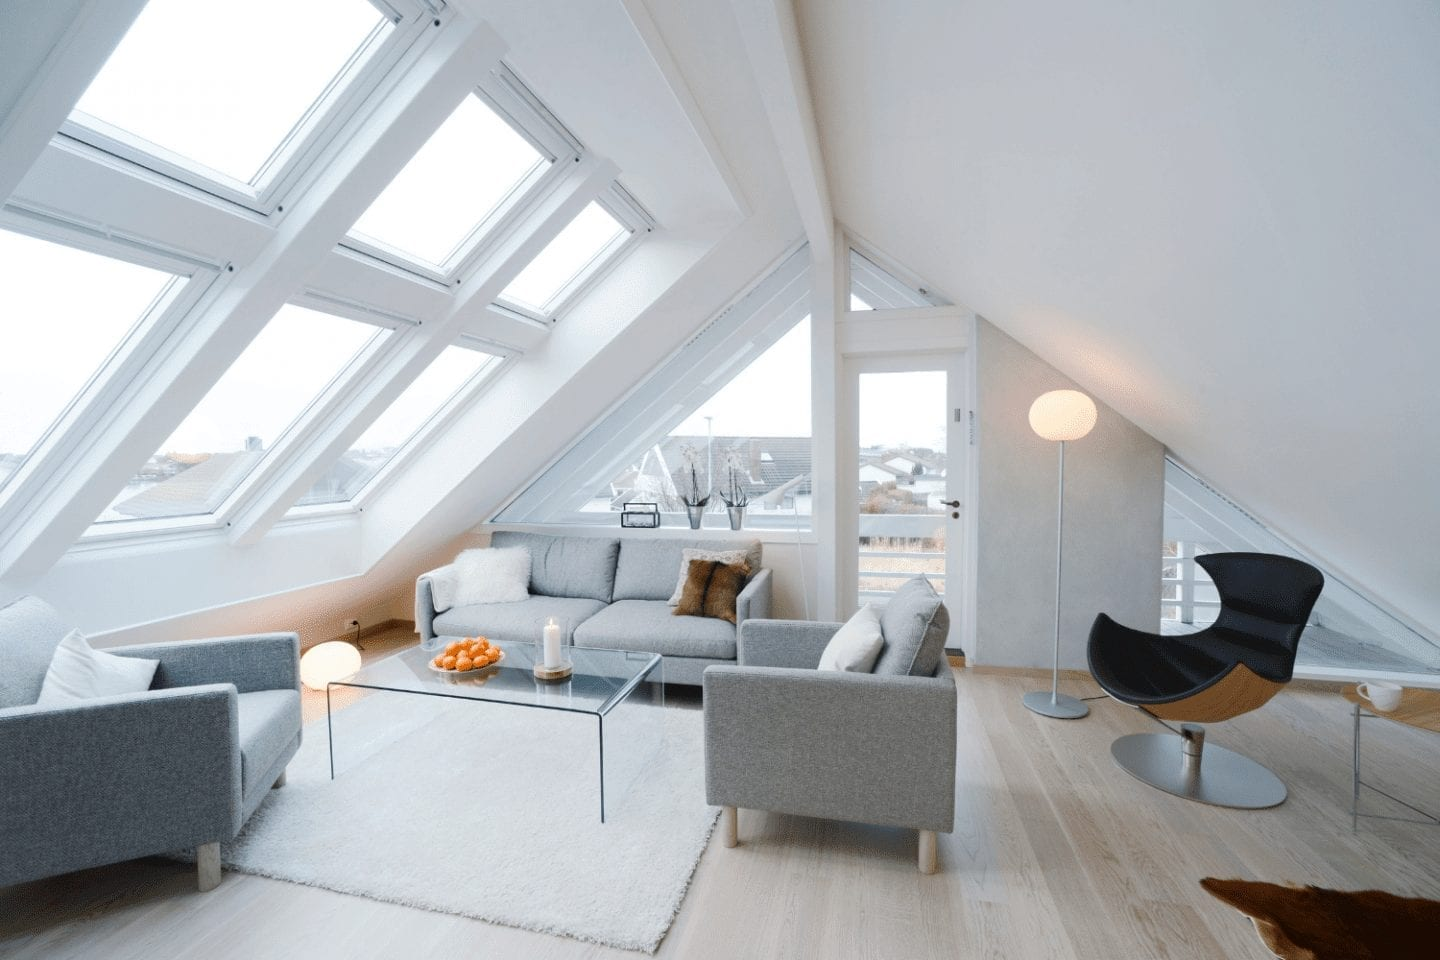 White decorated loft conversion turned into a sitting room with lots of light and windows